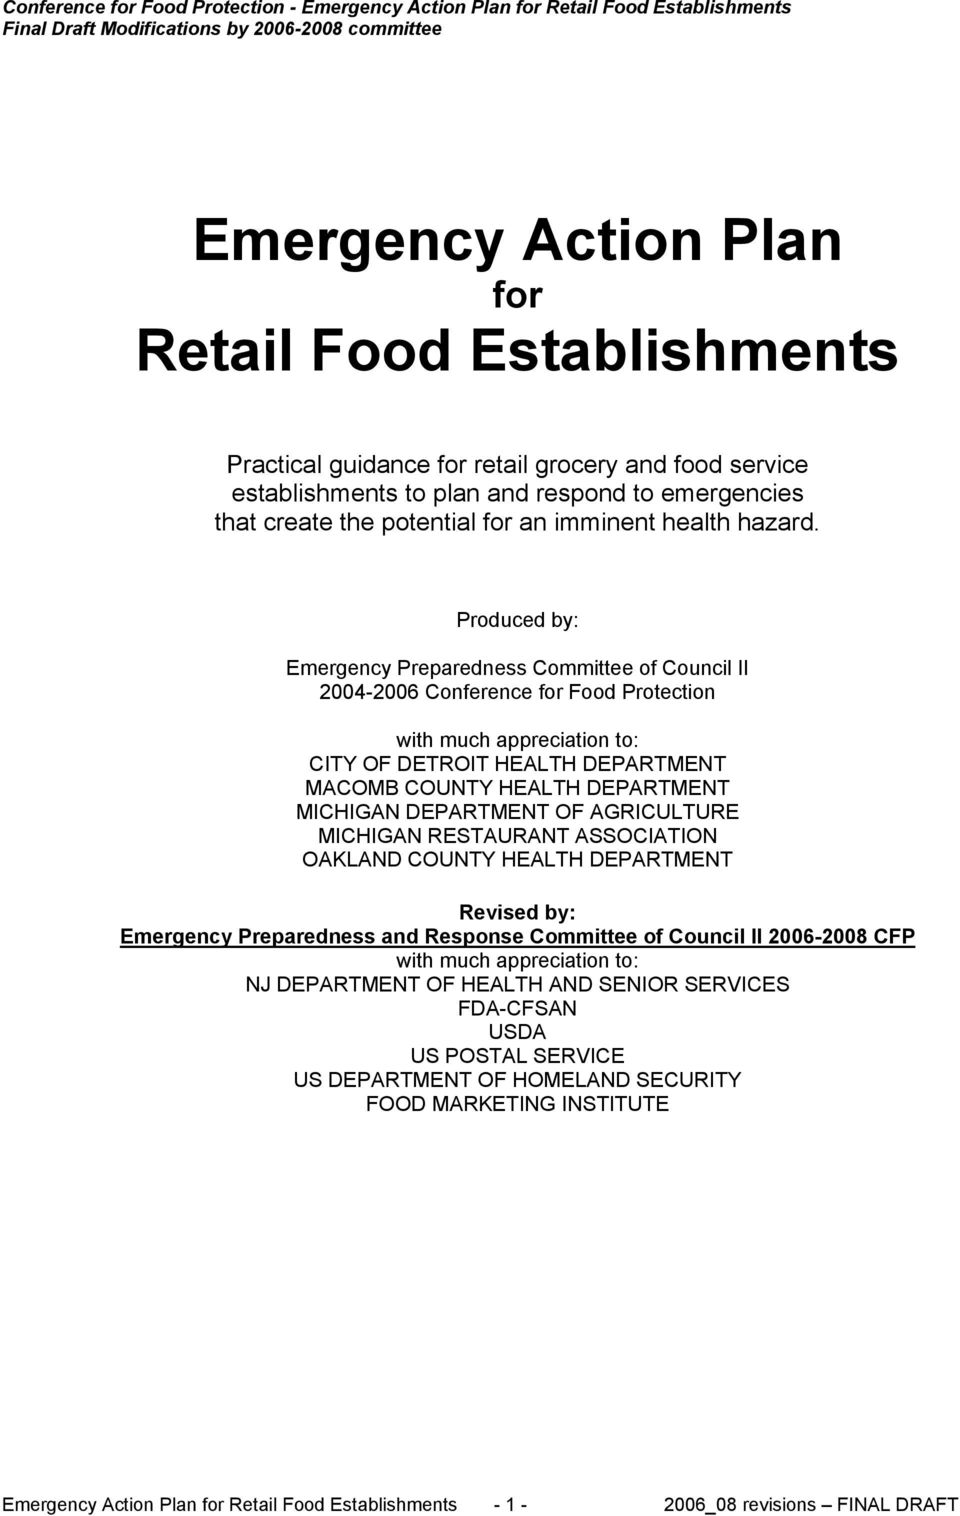 Produced by: Emergency Preparedness Committee of Council II 2004-2006 Conference for Food Protection with much appreciation to: CITY OF DETROIT HEALTH DEPARTMENT MACOMB COUNTY HEALTH DEPARTMENT